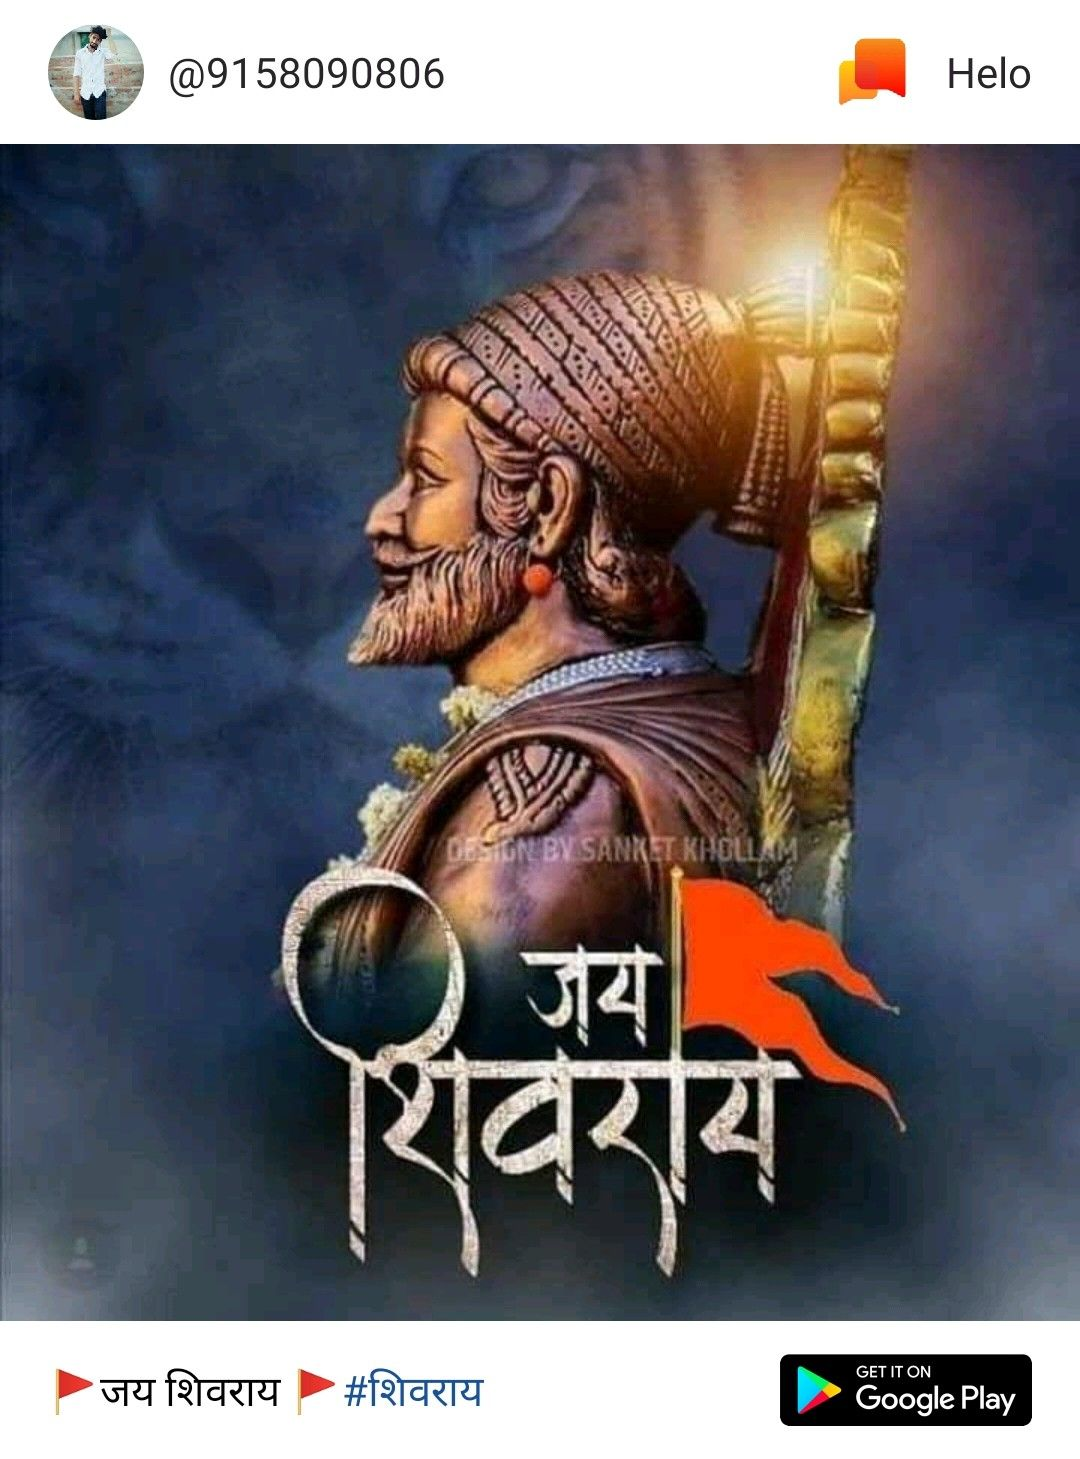 Shivaji Pics 🚩 Shivaji Maharaj Hd Wallpaper, Shiva - Full Hd Shivaji Maharaj , HD Wallpaper & Backgrounds